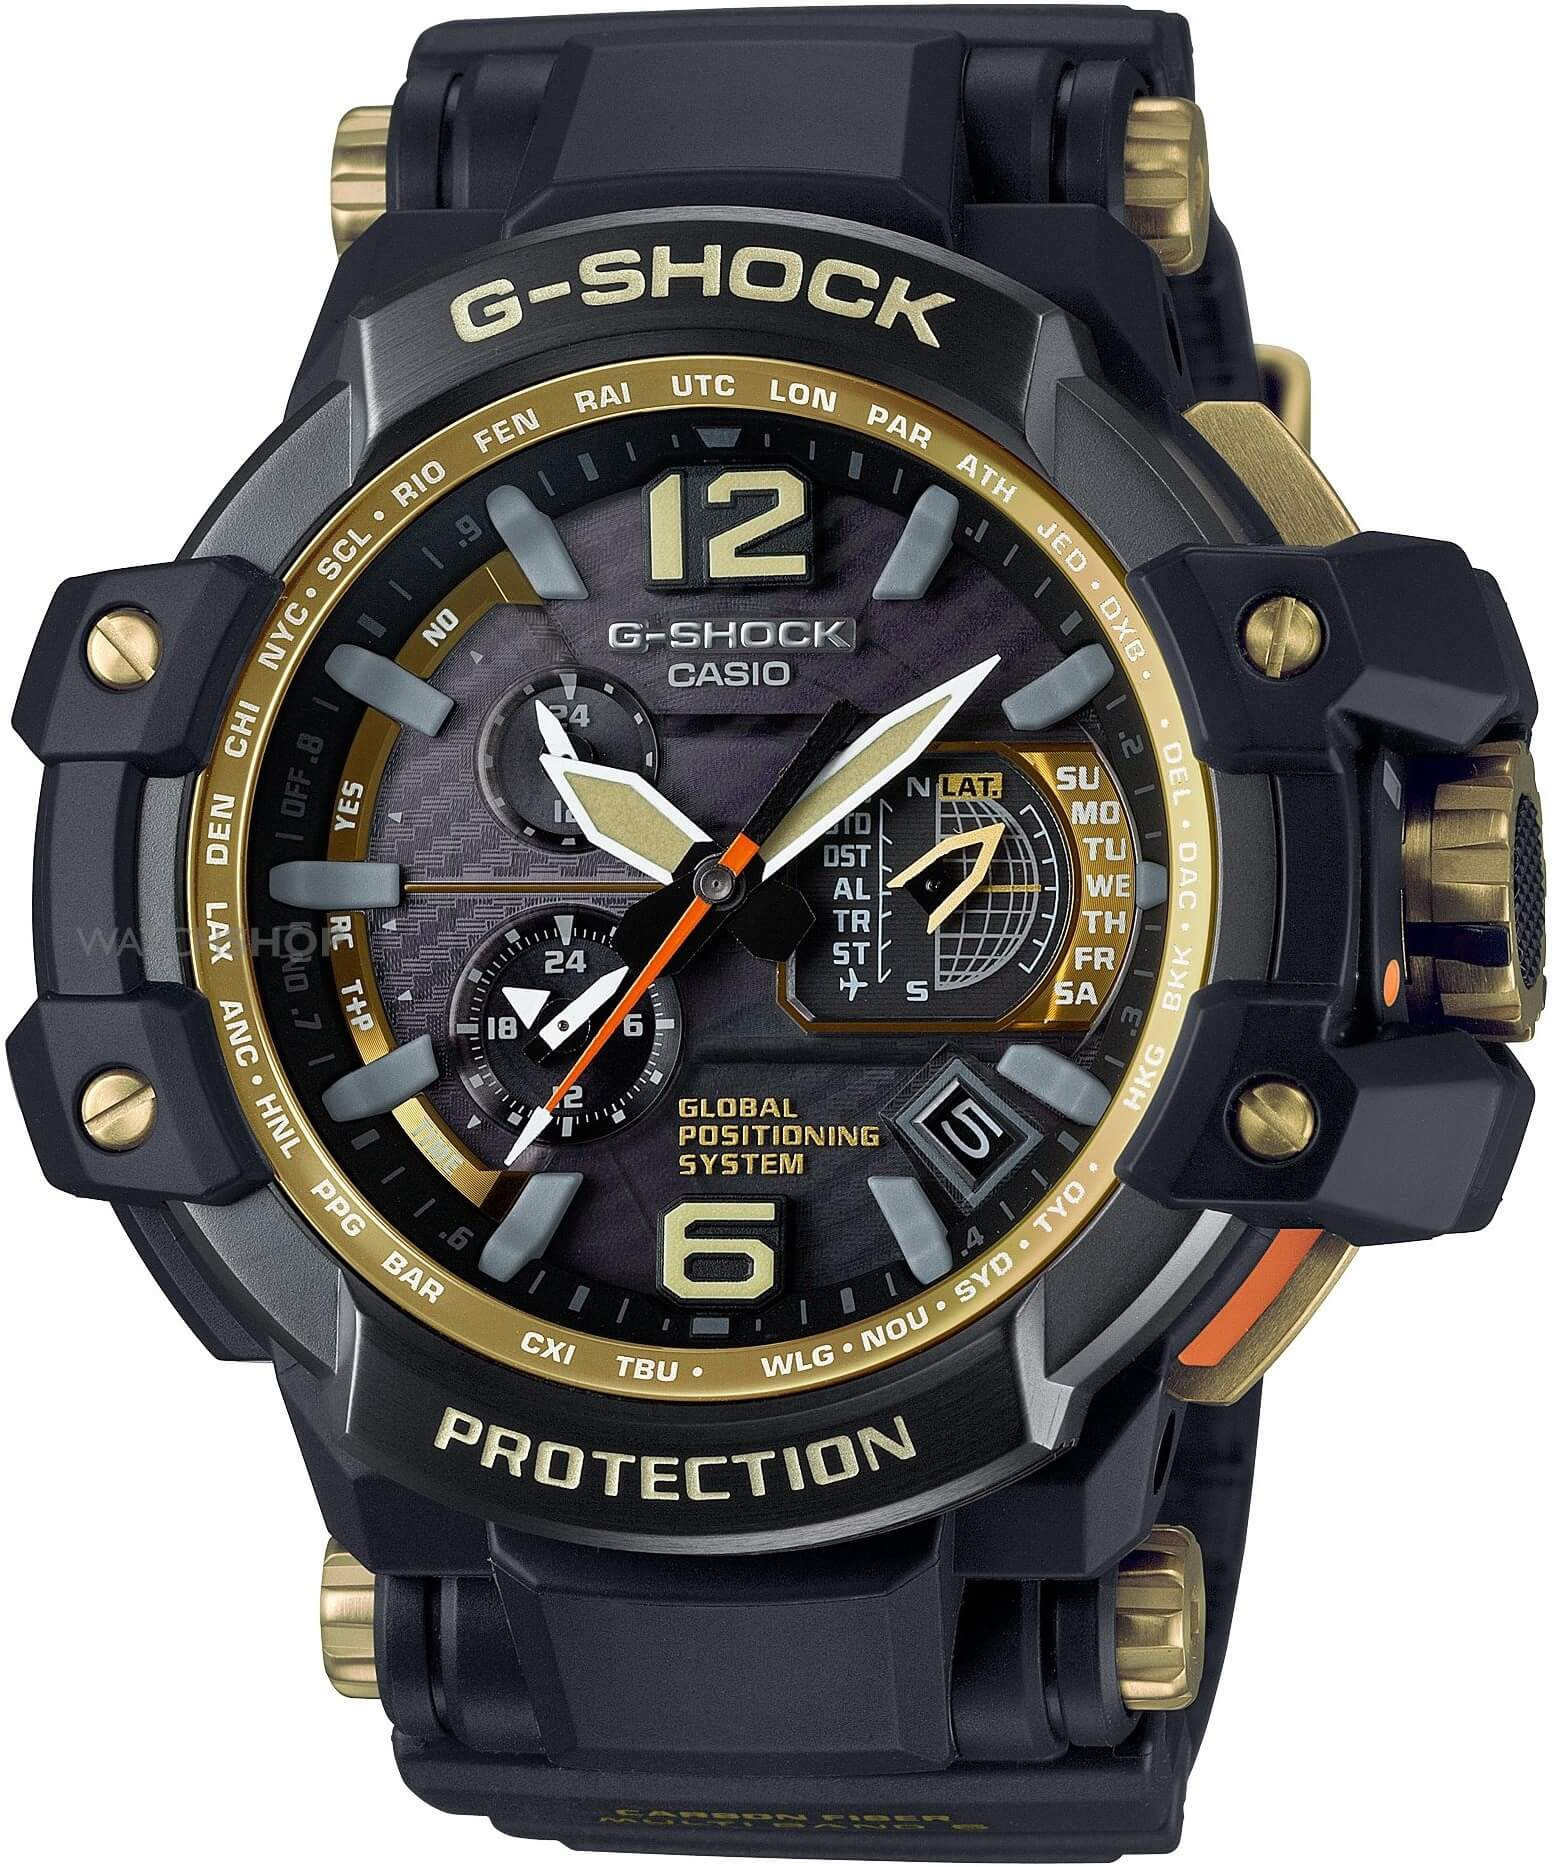 Мужские часы Casio G-Shock GPW-1000GB-1AER